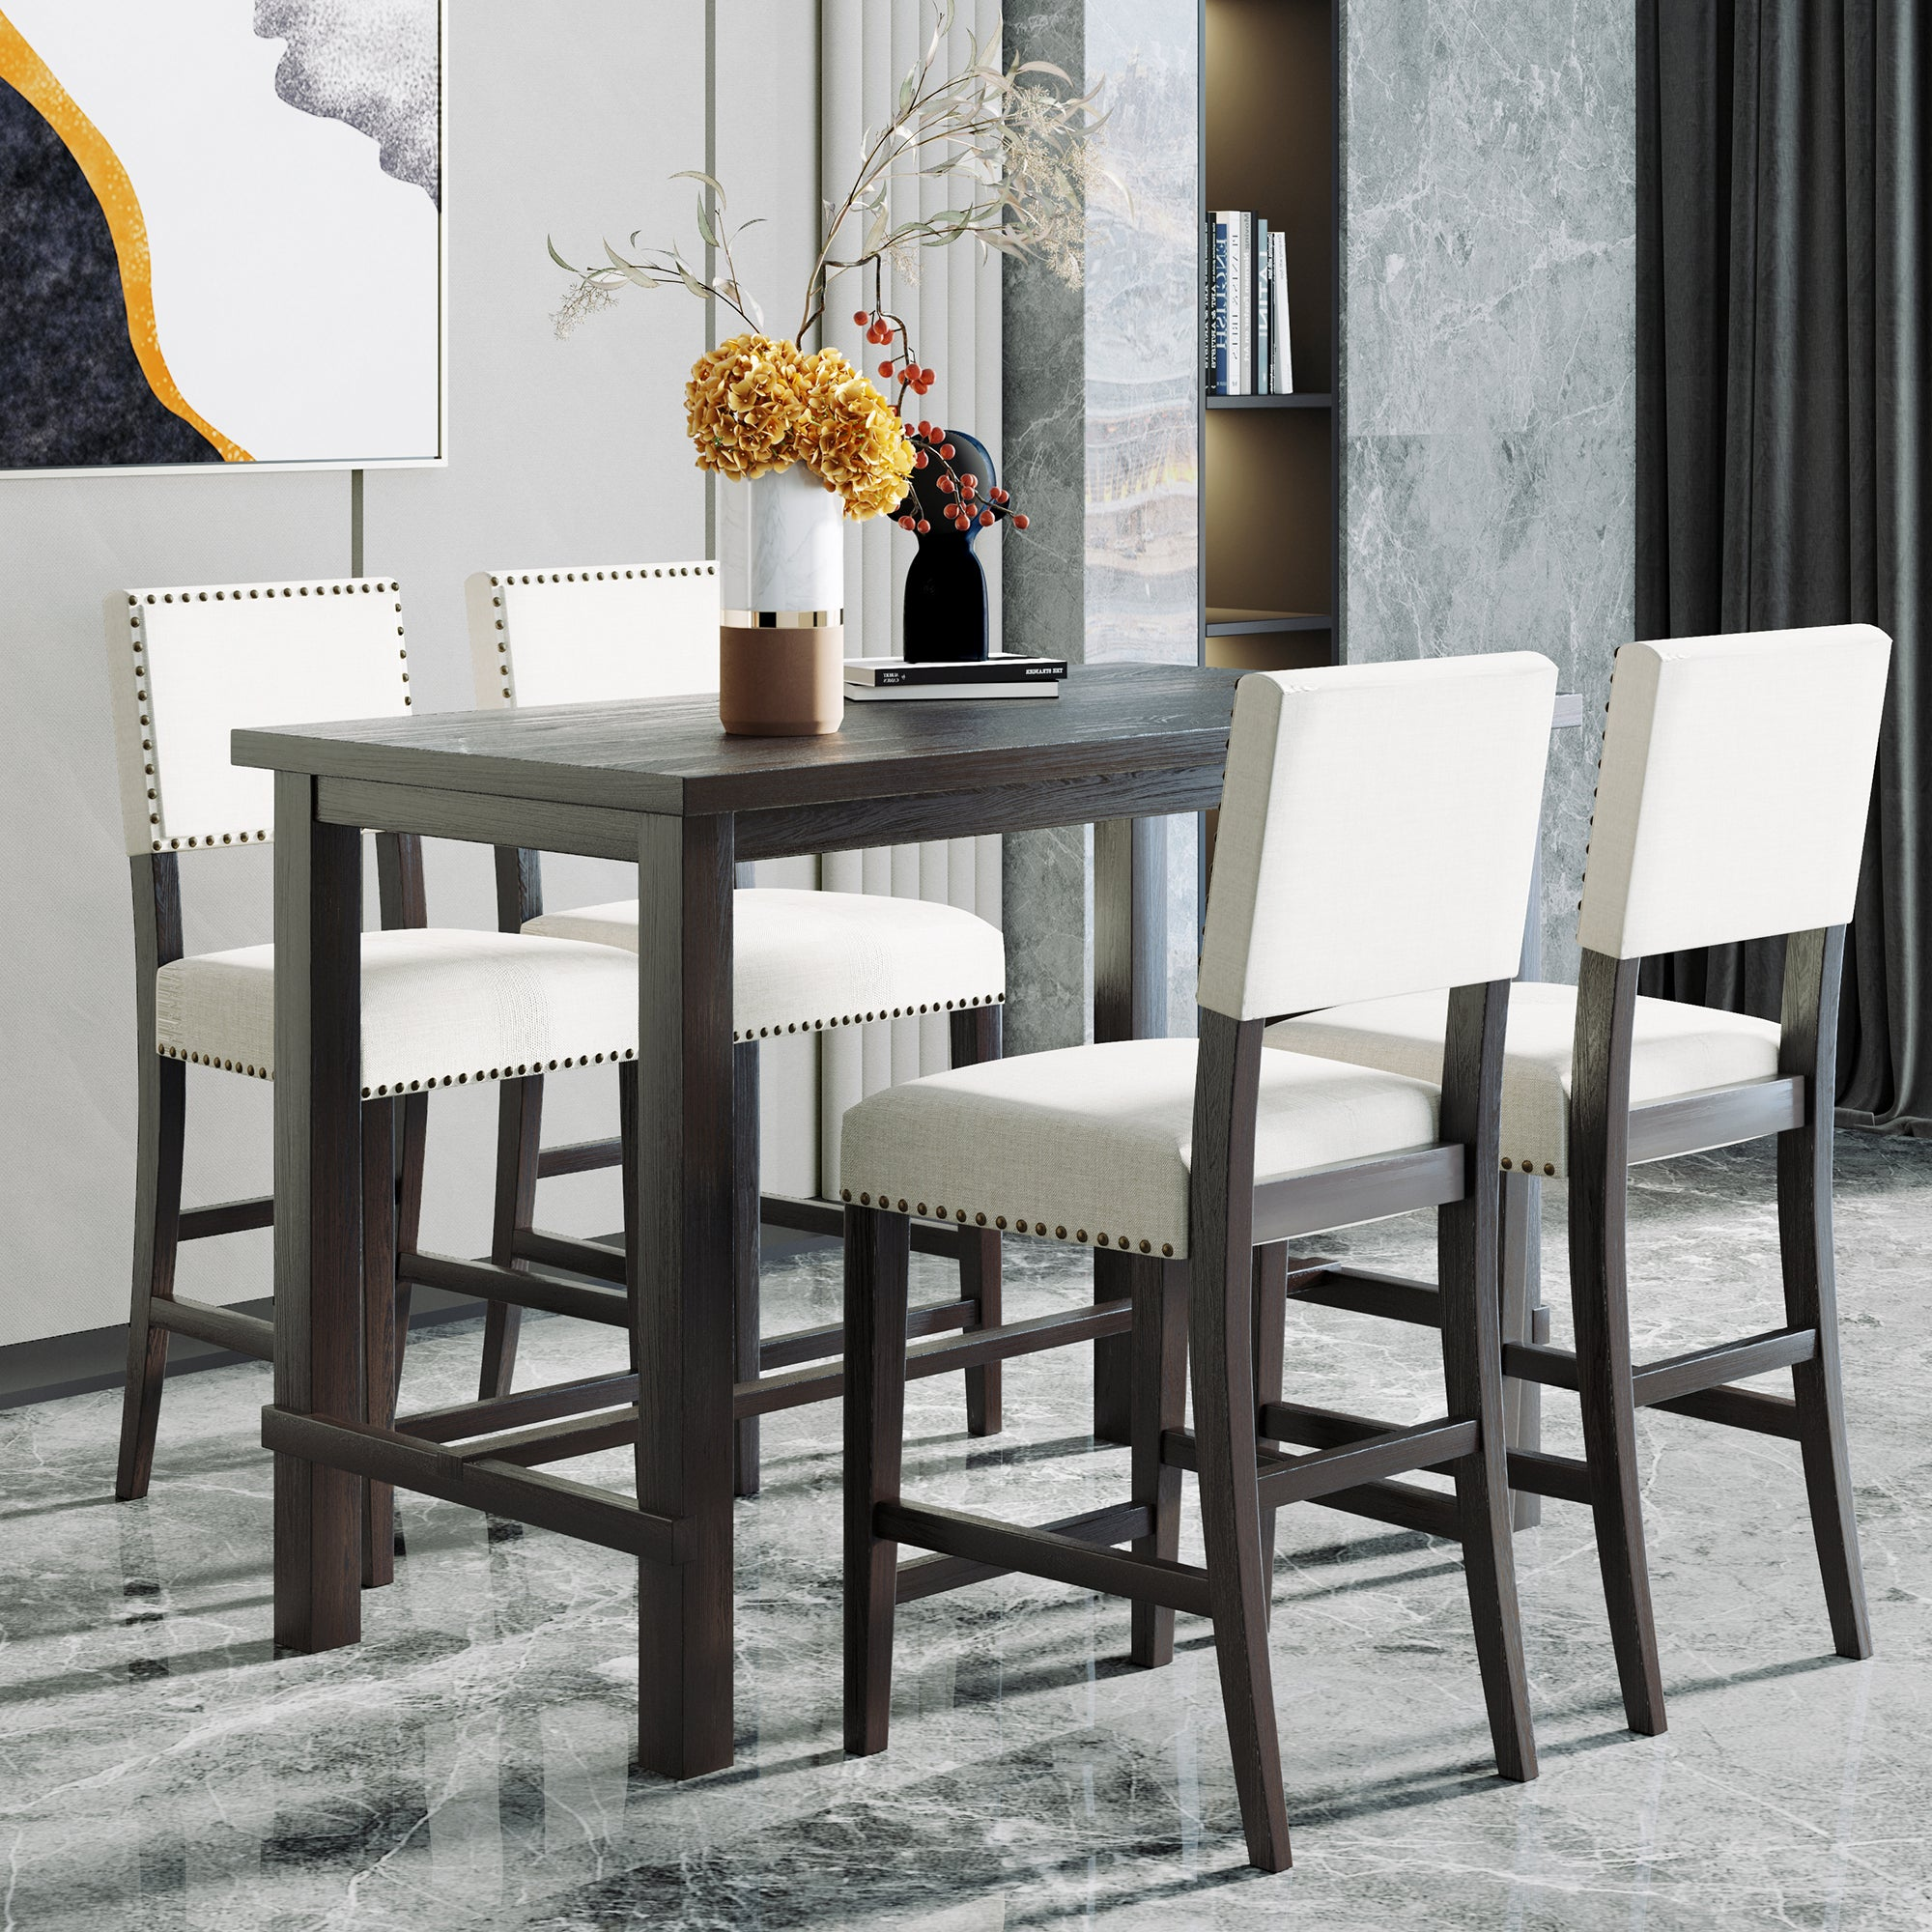 Classic 5-Piece Counter Height Dining Set